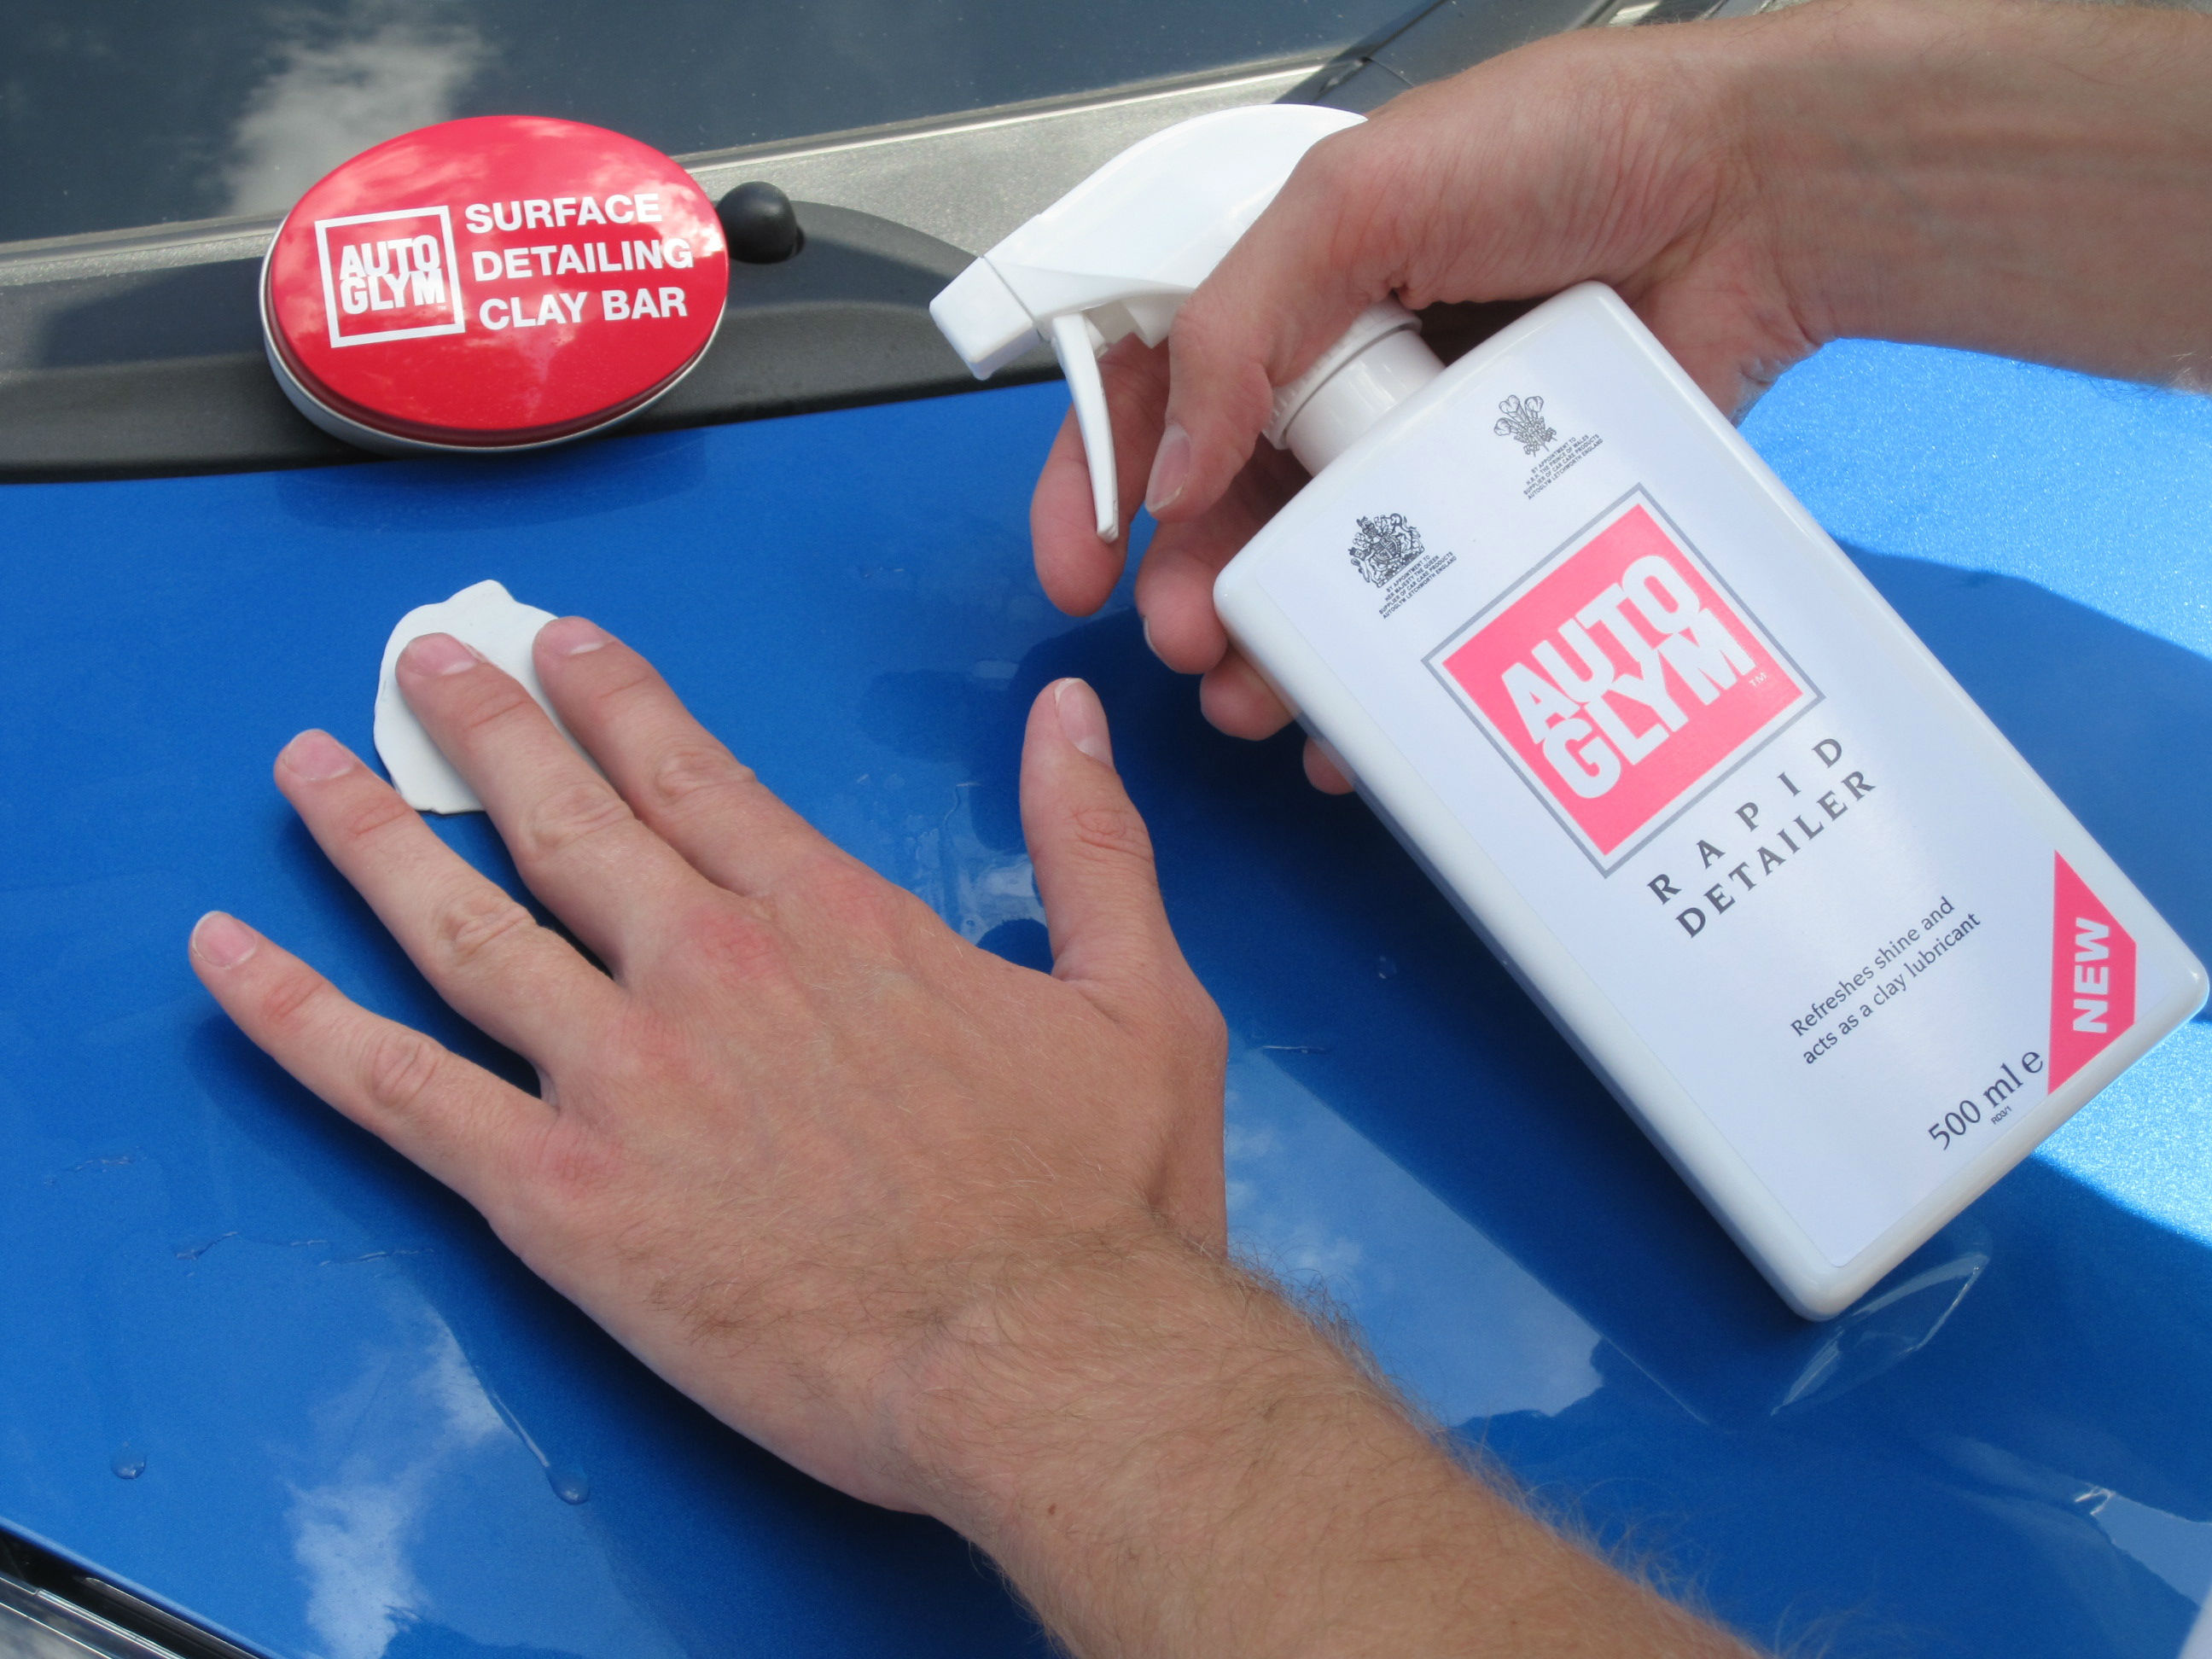 A clay bar can remove tree sap stains from paintwork